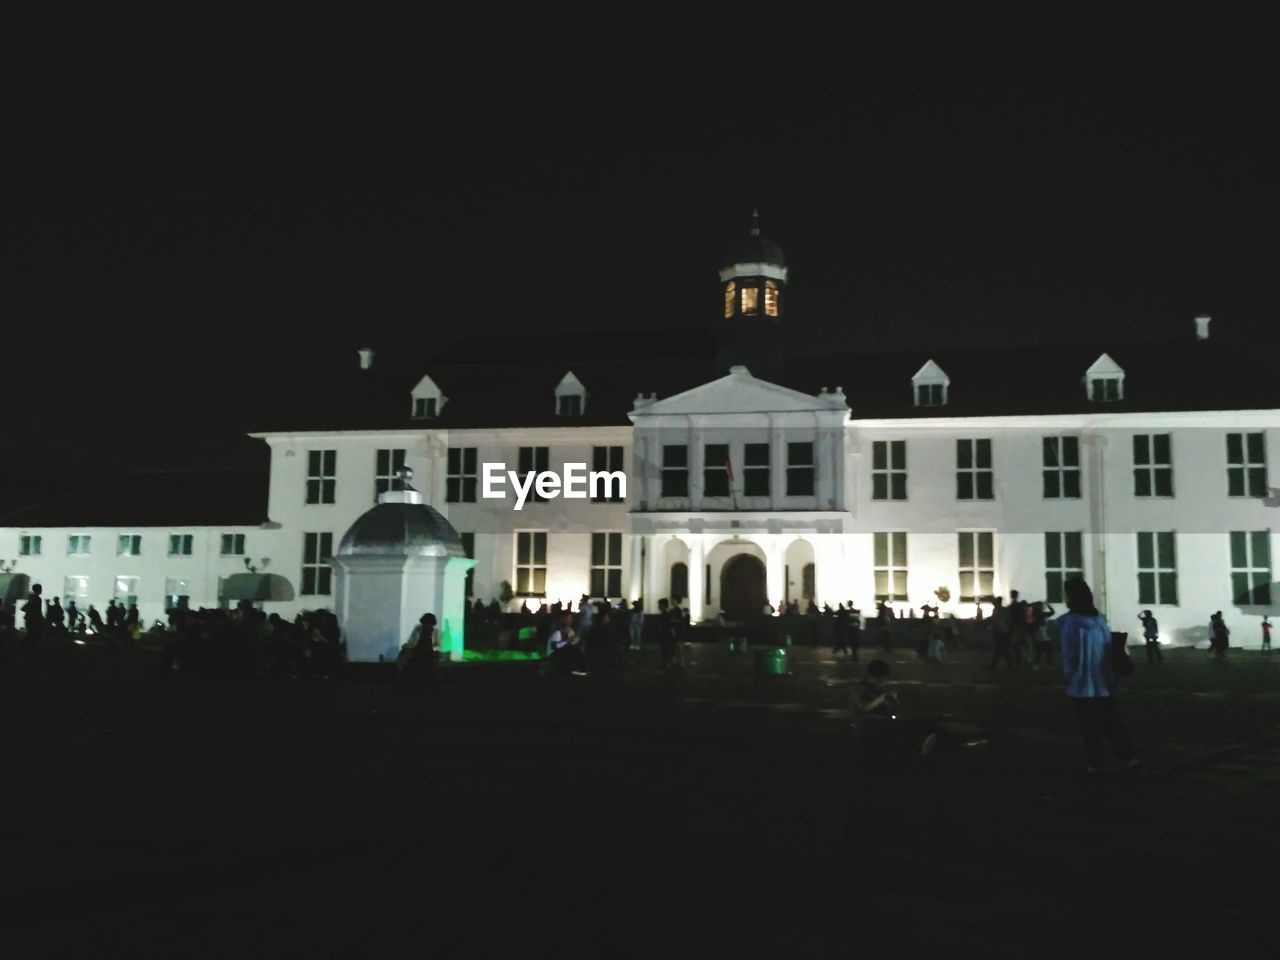 architecture, night, built structure, building exterior, large group of people, copy space, outdoors, men, real people, illuminated, clear sky, crowd, sky, people